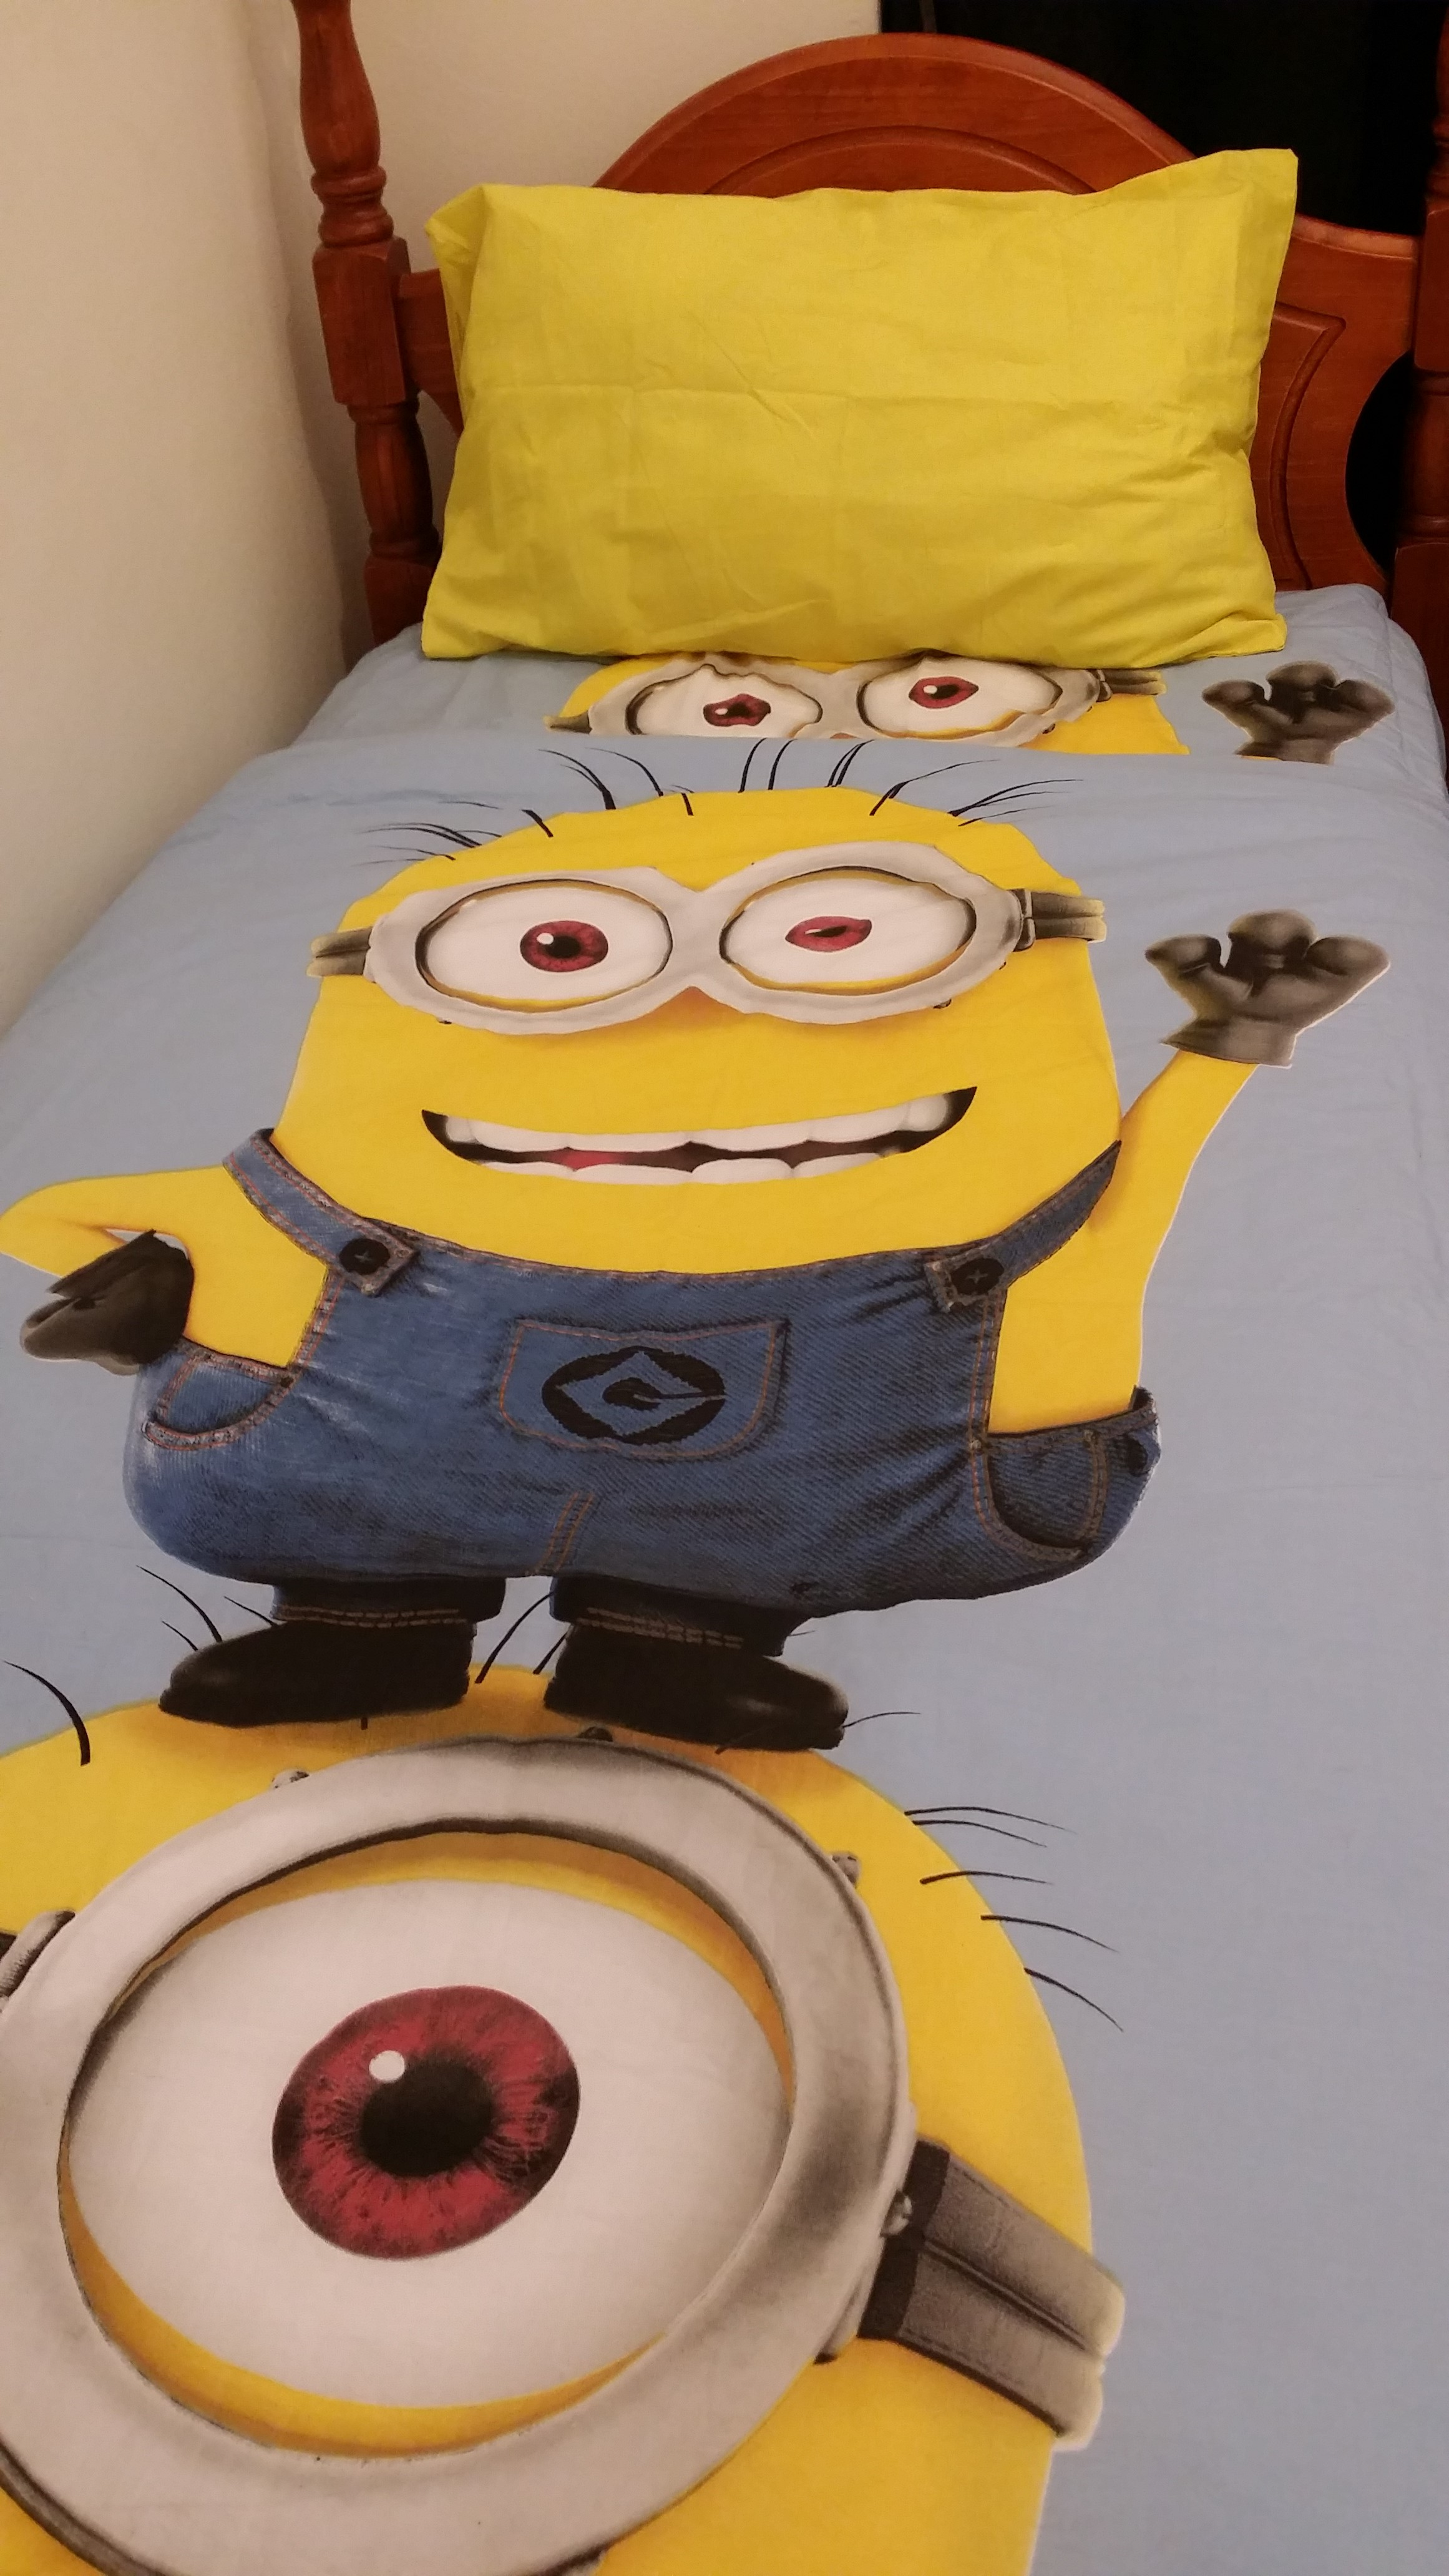 "DESPICABLE ME MINION"" Single Bed Quilt Cover Set"